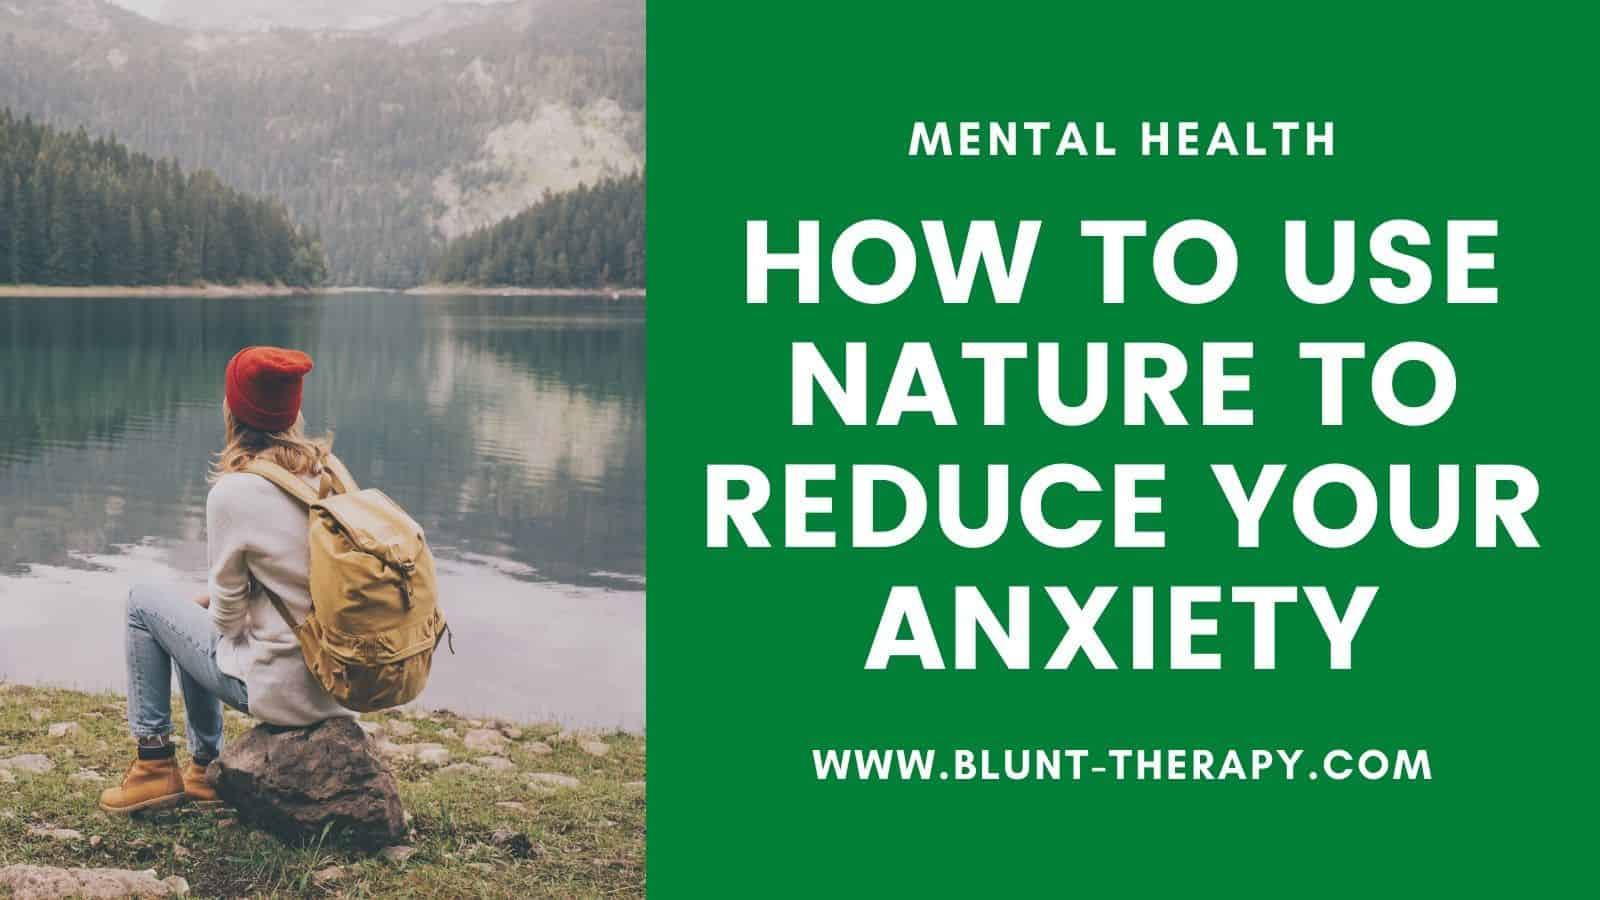 How To use nature to reduce your anxiety